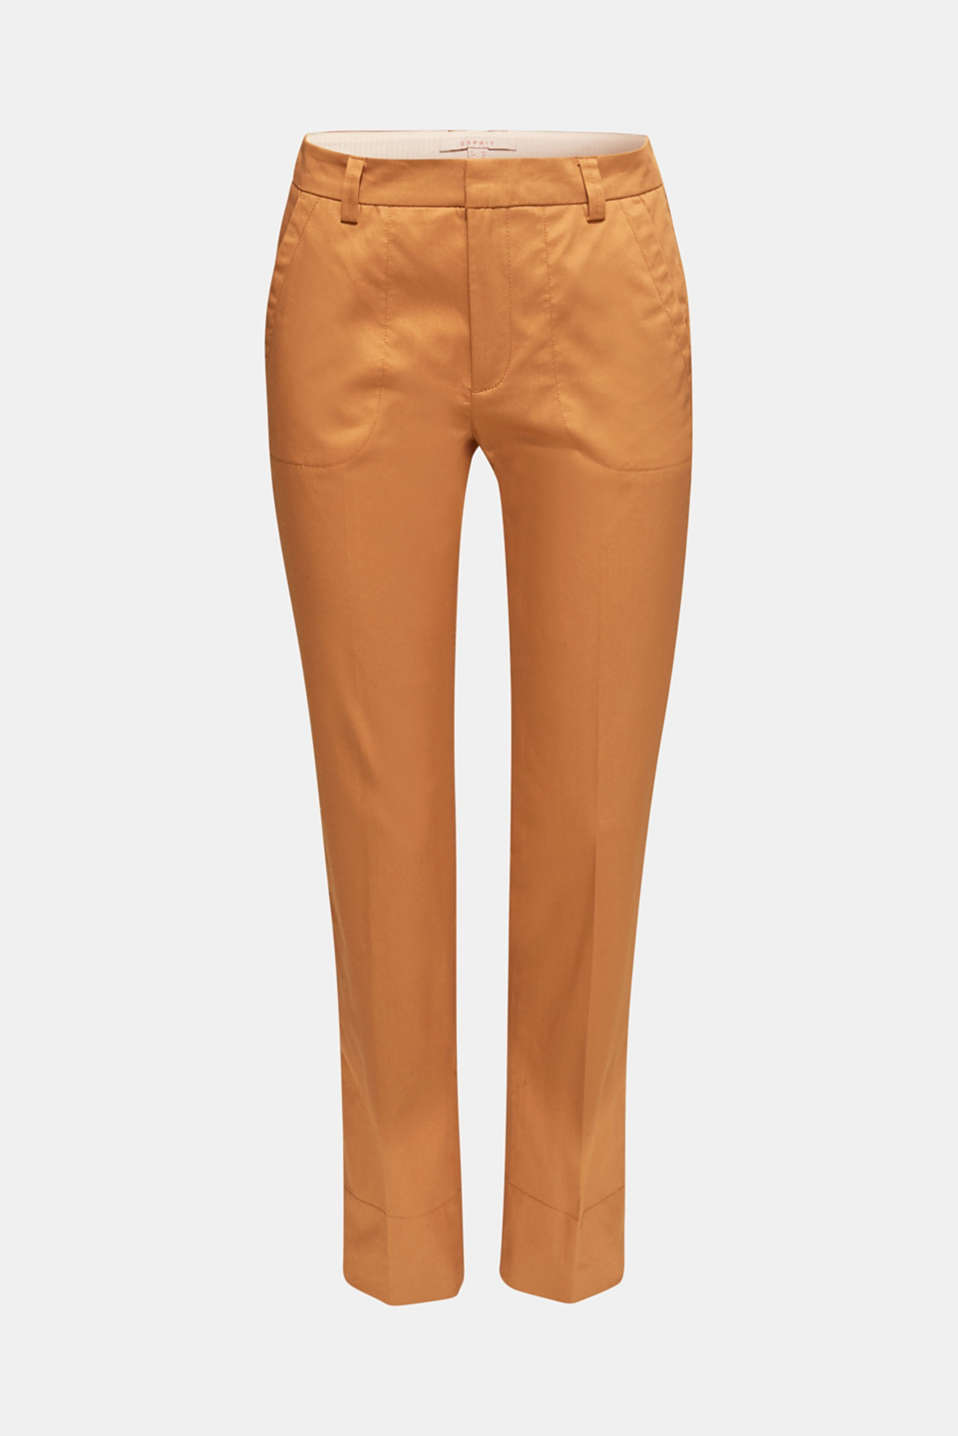 Cotton twill chinos, CAMEL, detail image number 7